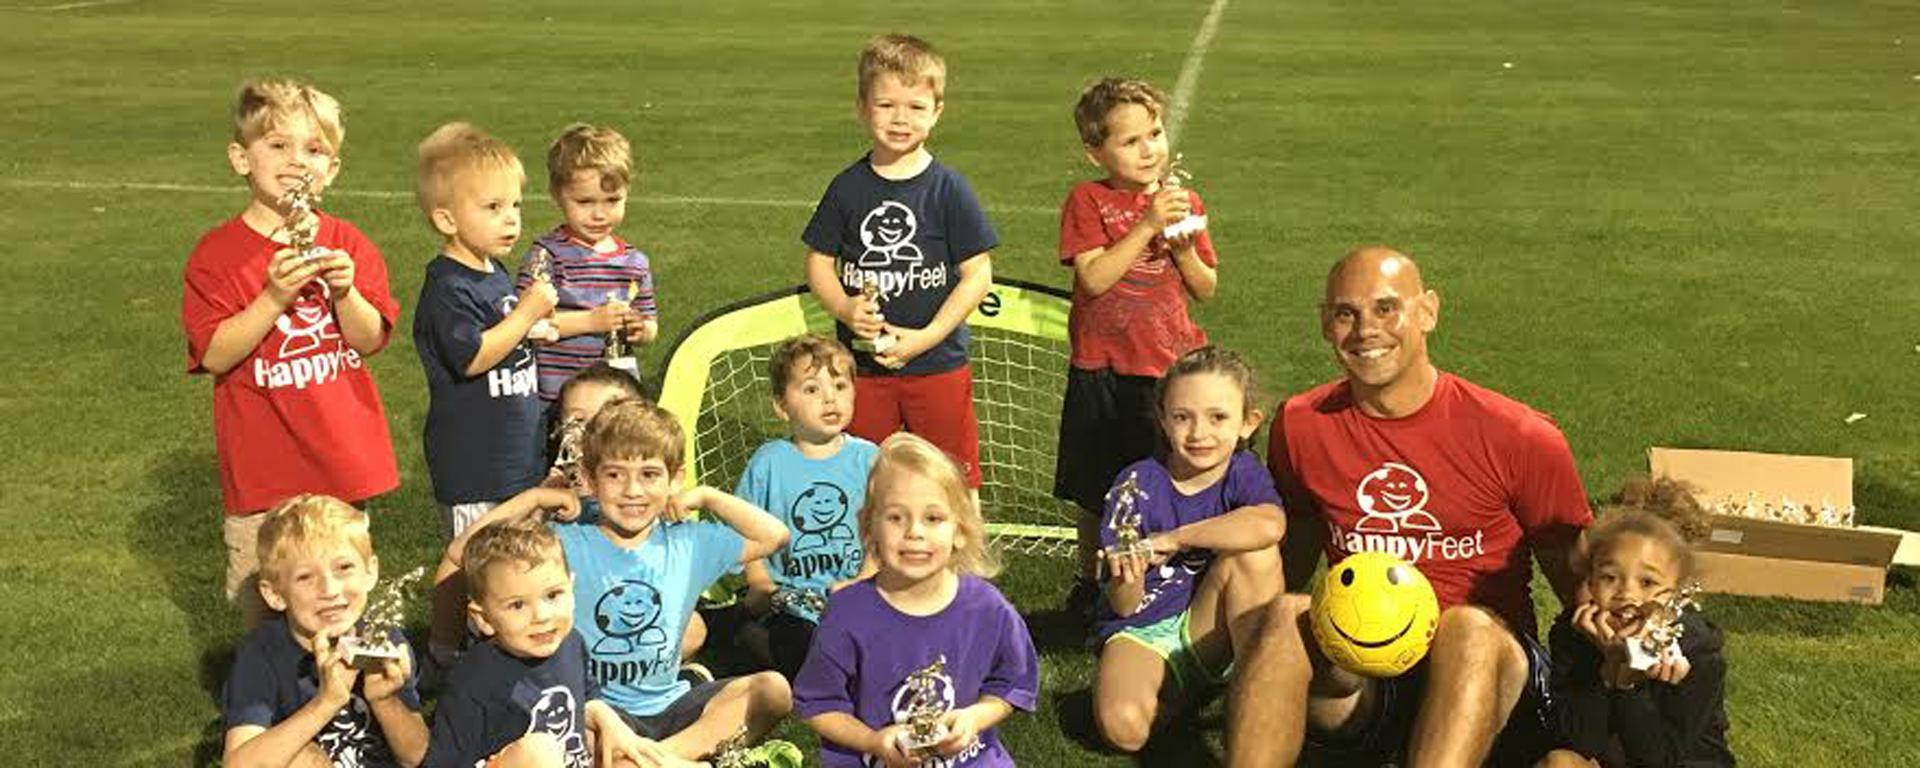 Youth Soccer Team Picture